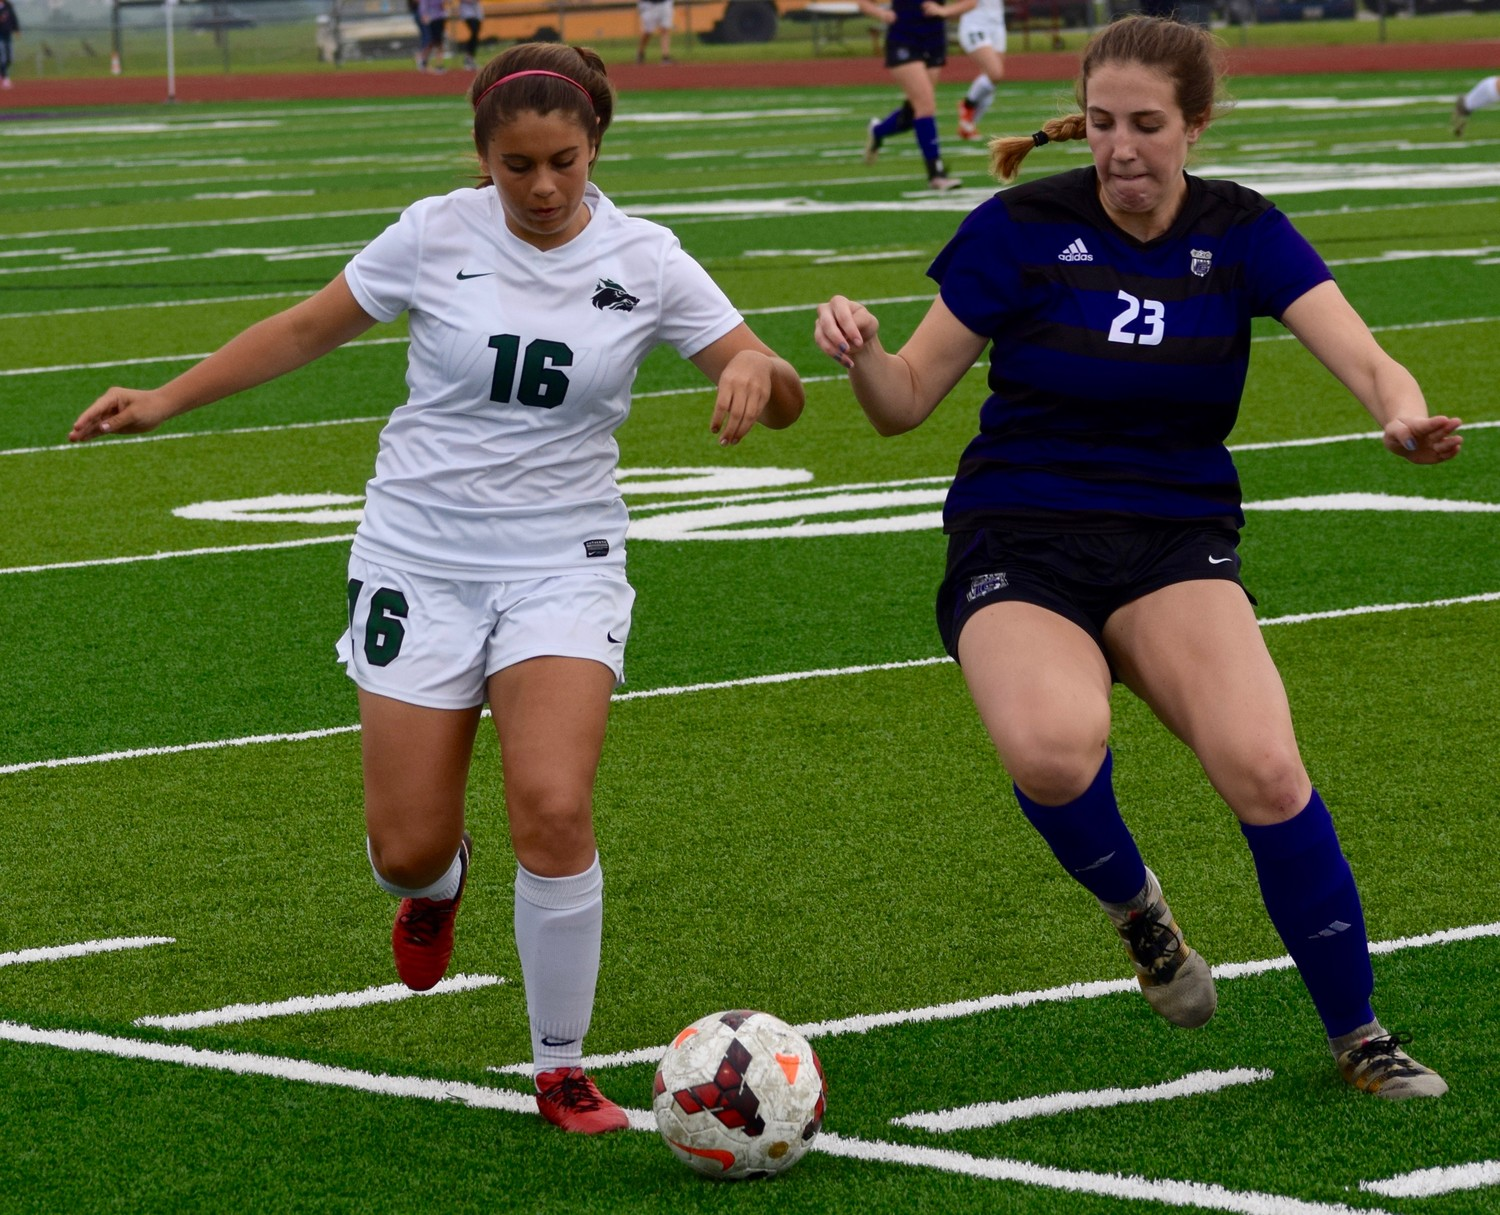 Bella Grenada and Cedar Park beat College Station 2-1 in the third round of the playoffs Tuesday night.